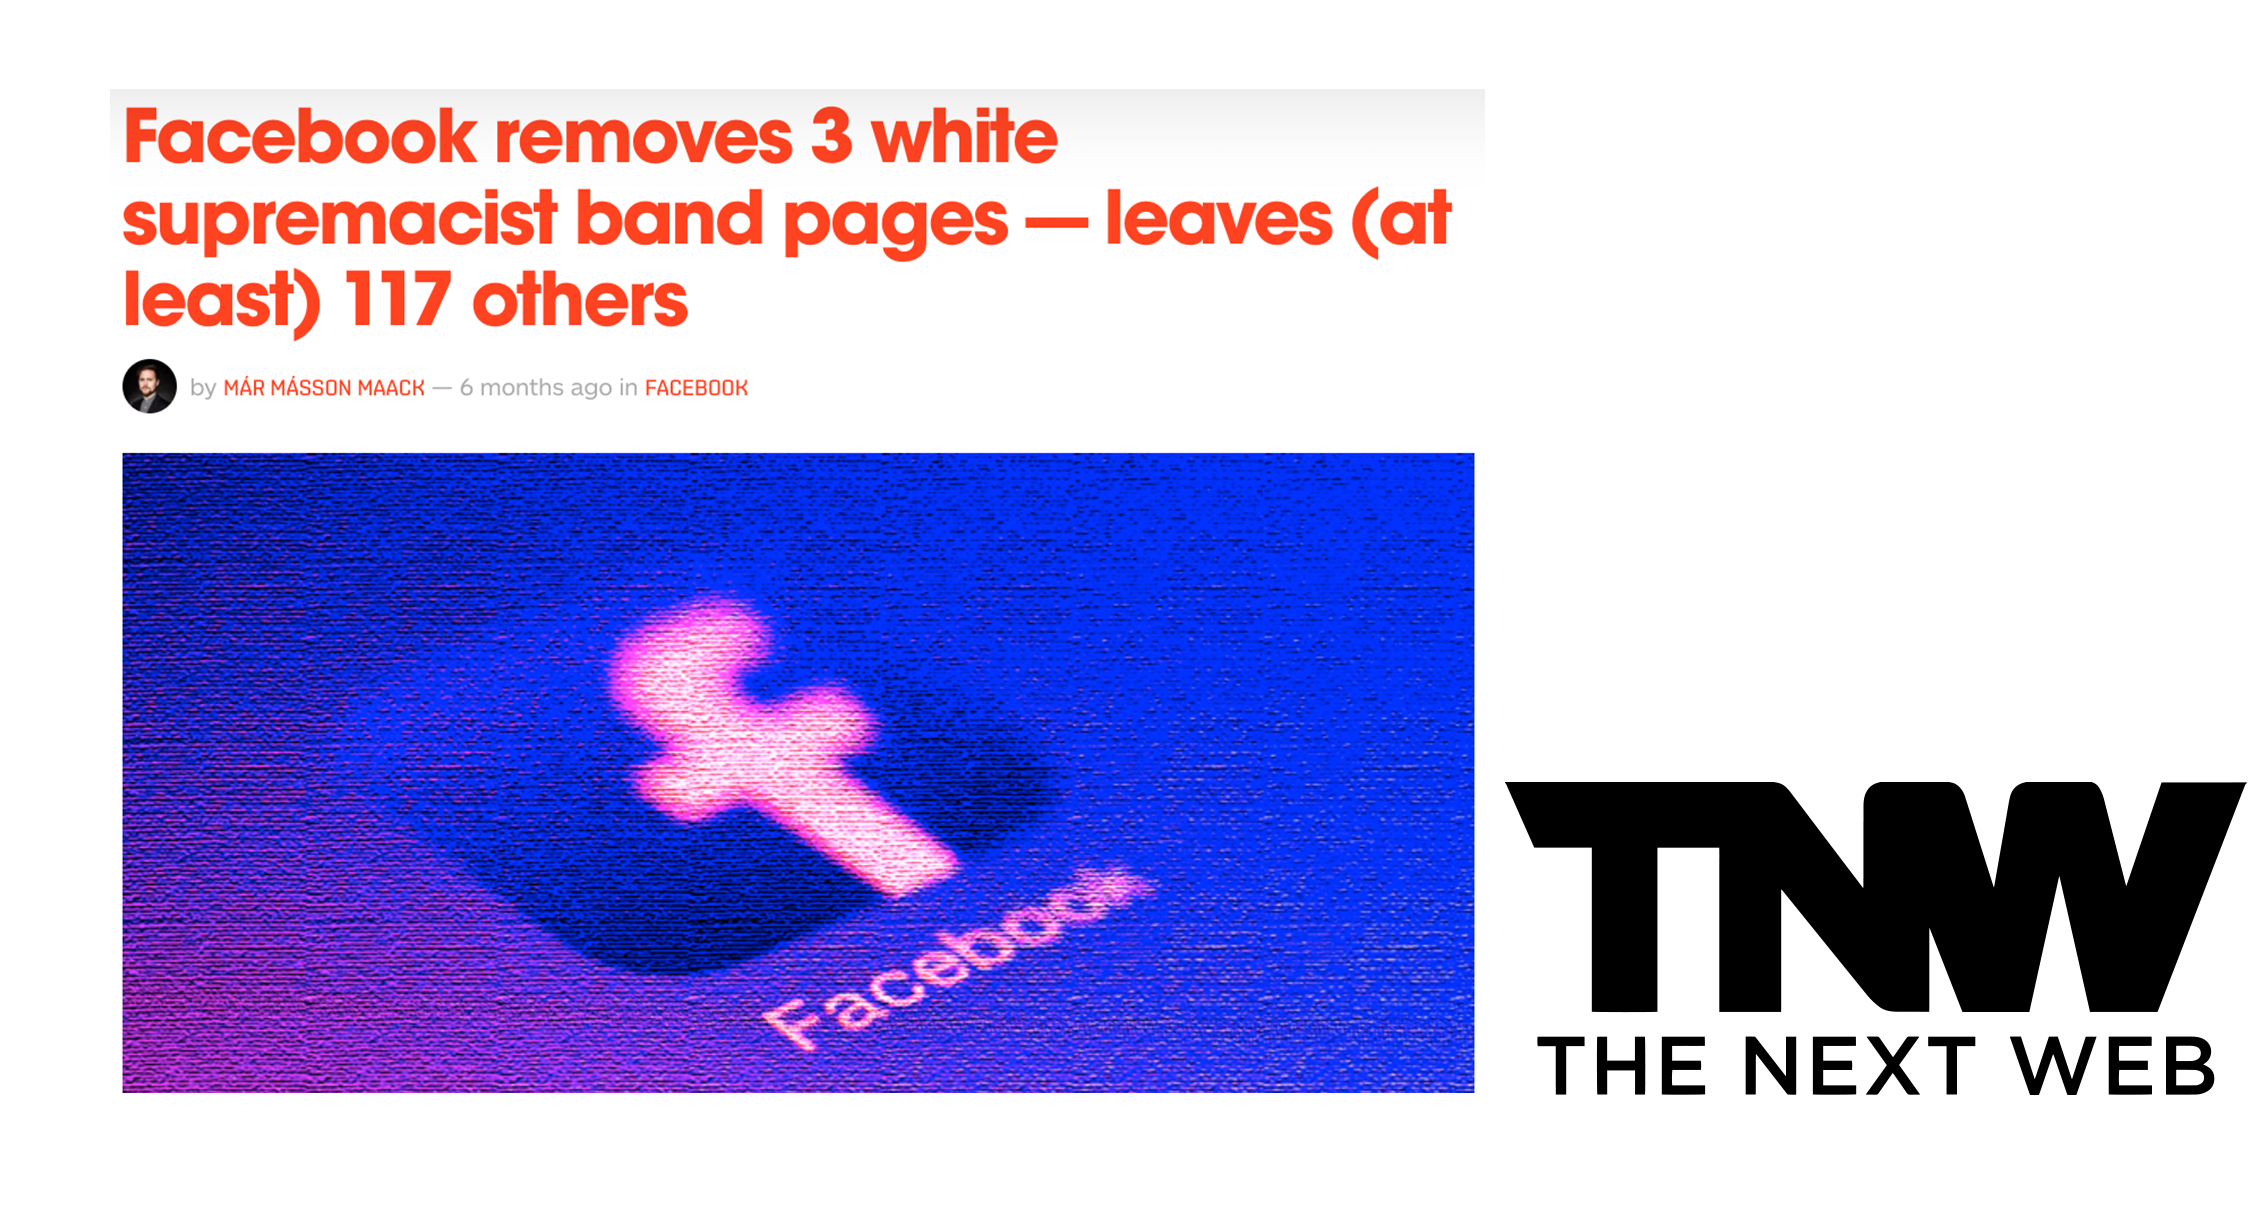 Facebook removes white supremacist band pages